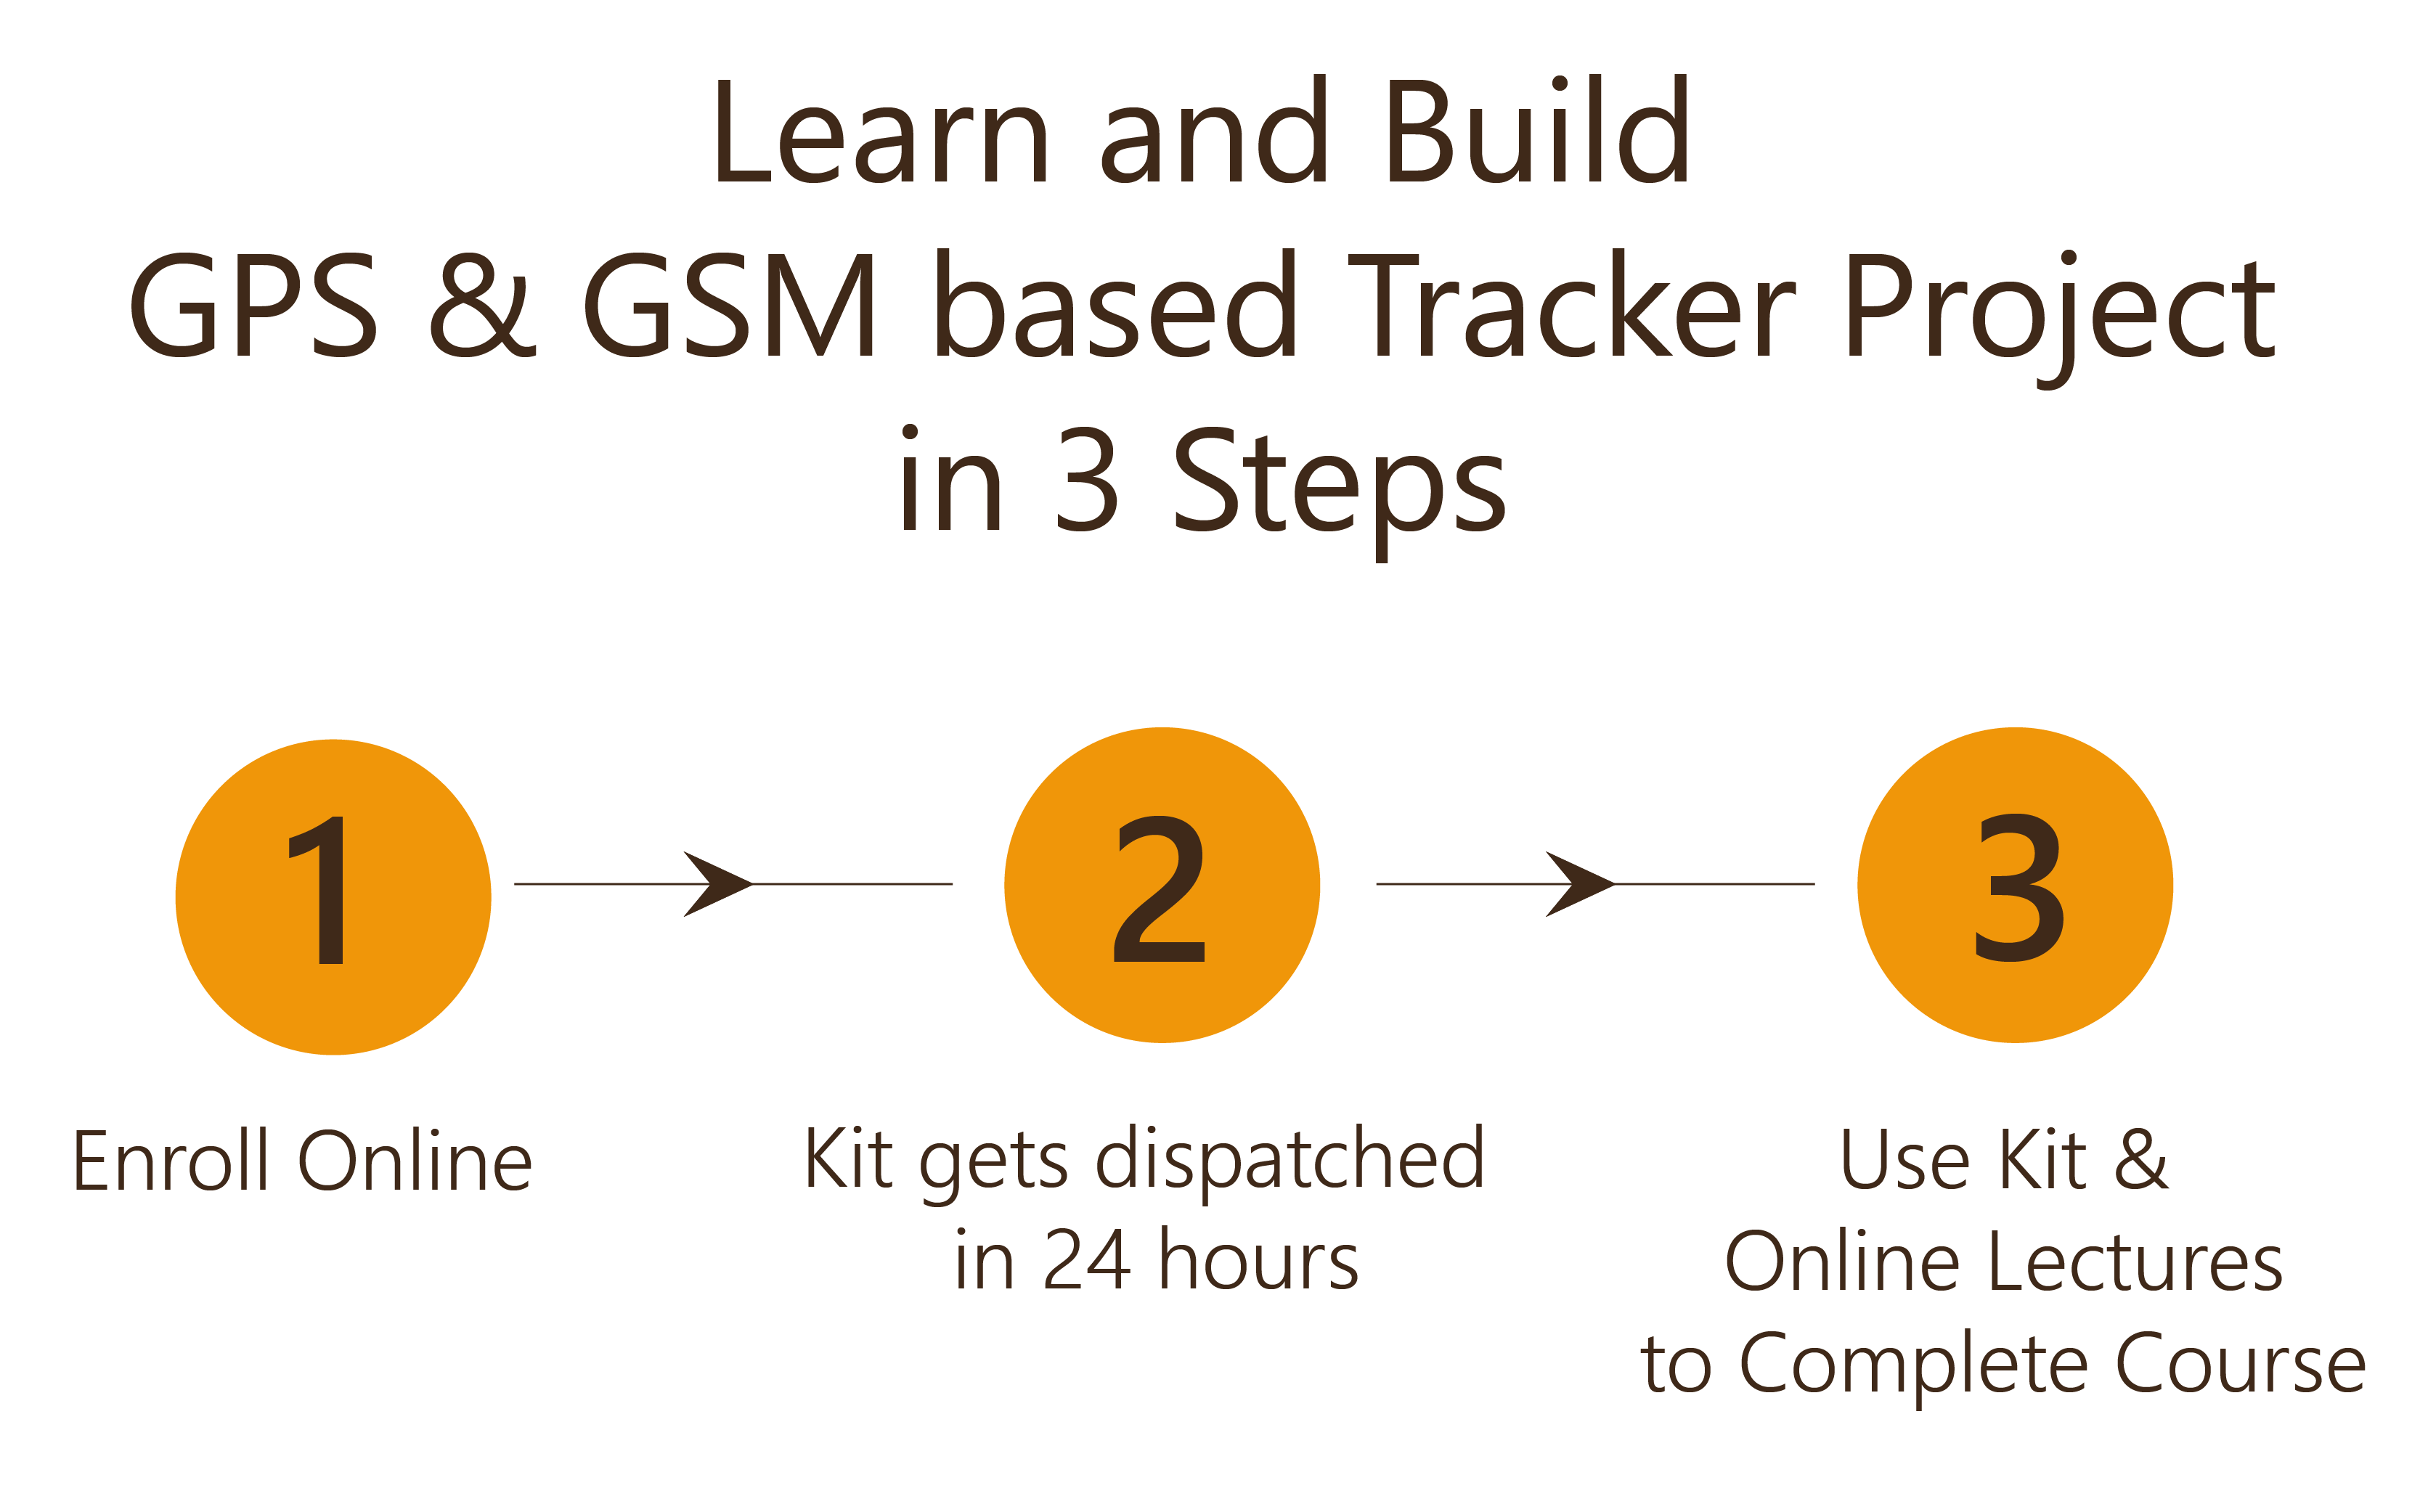 Learn and Build GPS & GSM Tracking Project in 3 Steps